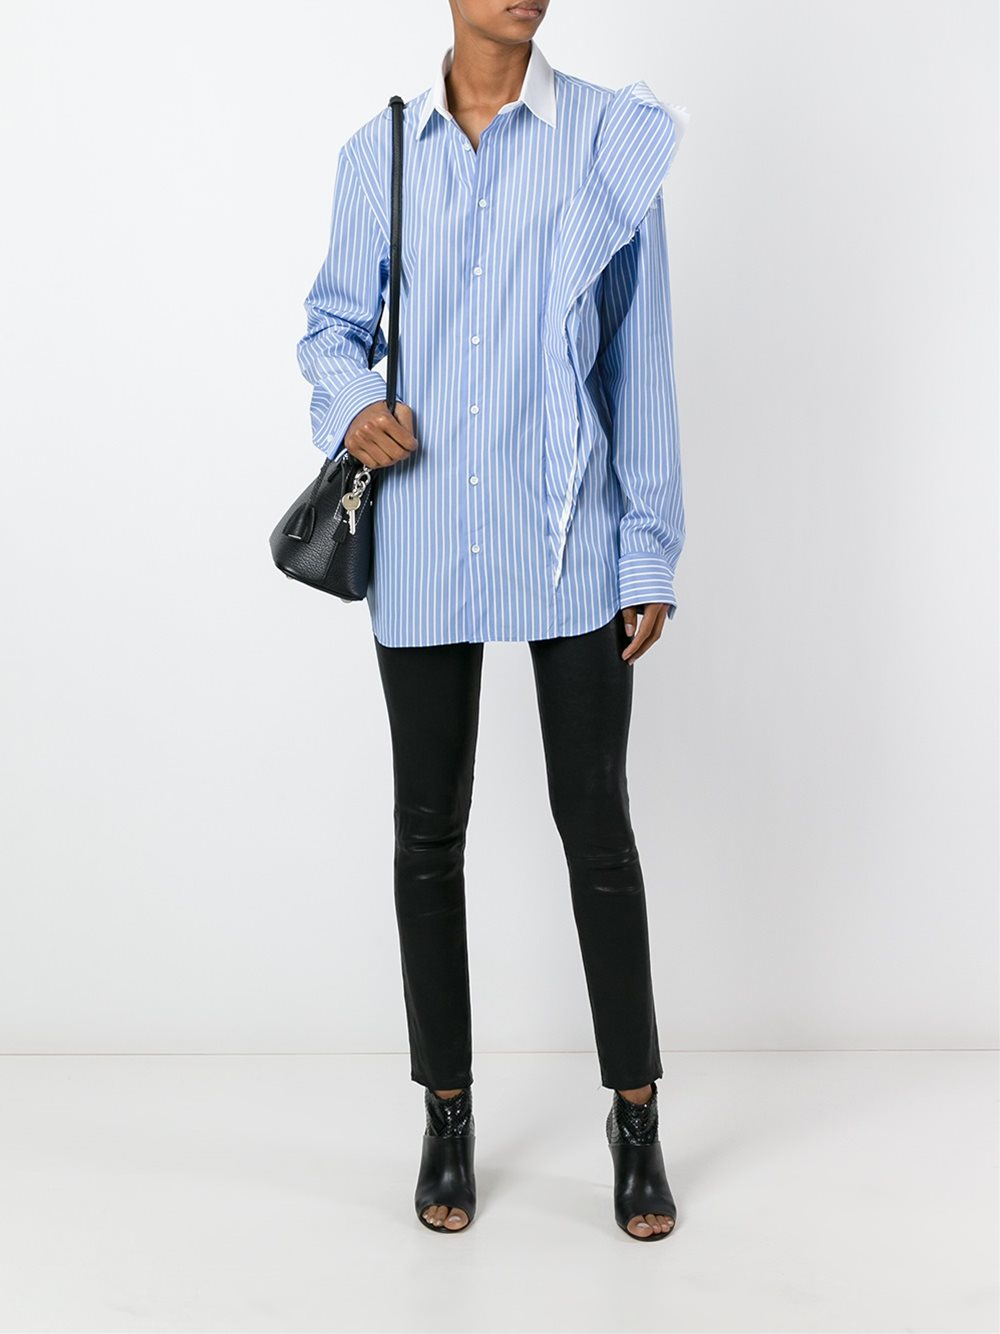 Maison margiela striped ruffle detail shirt in blue lyst for Maison de margiela